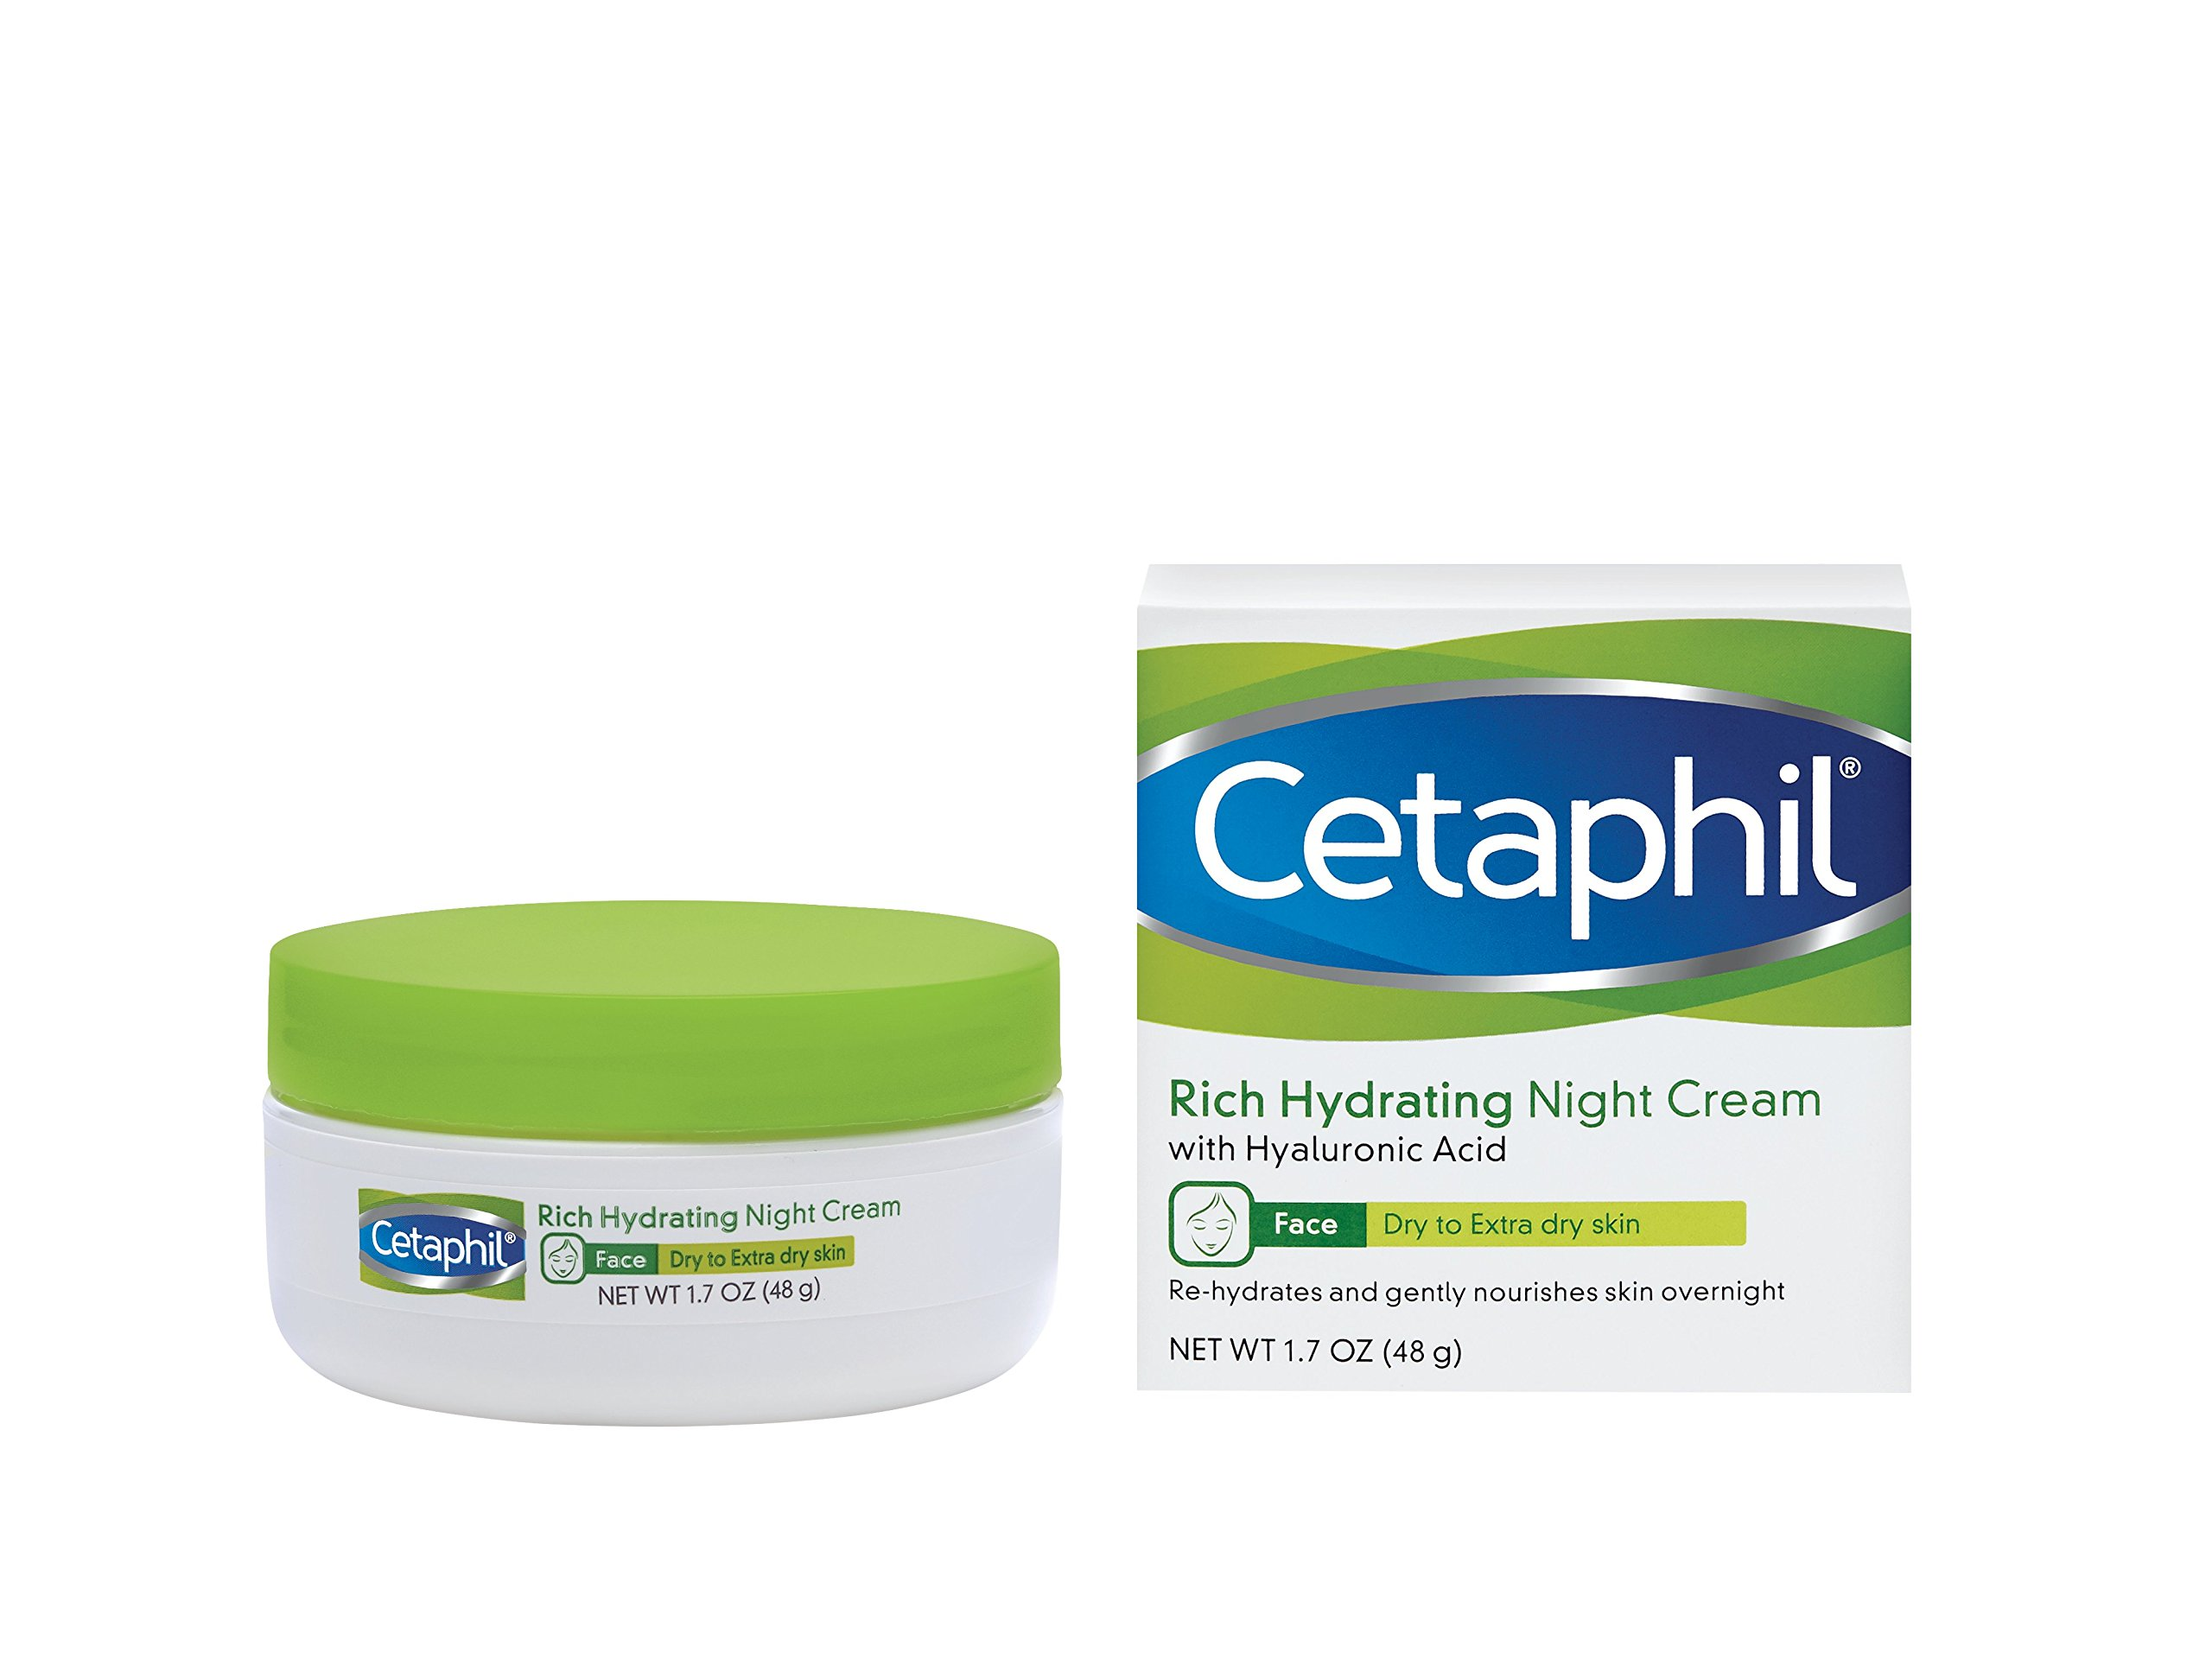 Cetaphil Rich Hydrating Night Cream with Hyaluronic Acid, 1.7 Ounce by Cetaphil